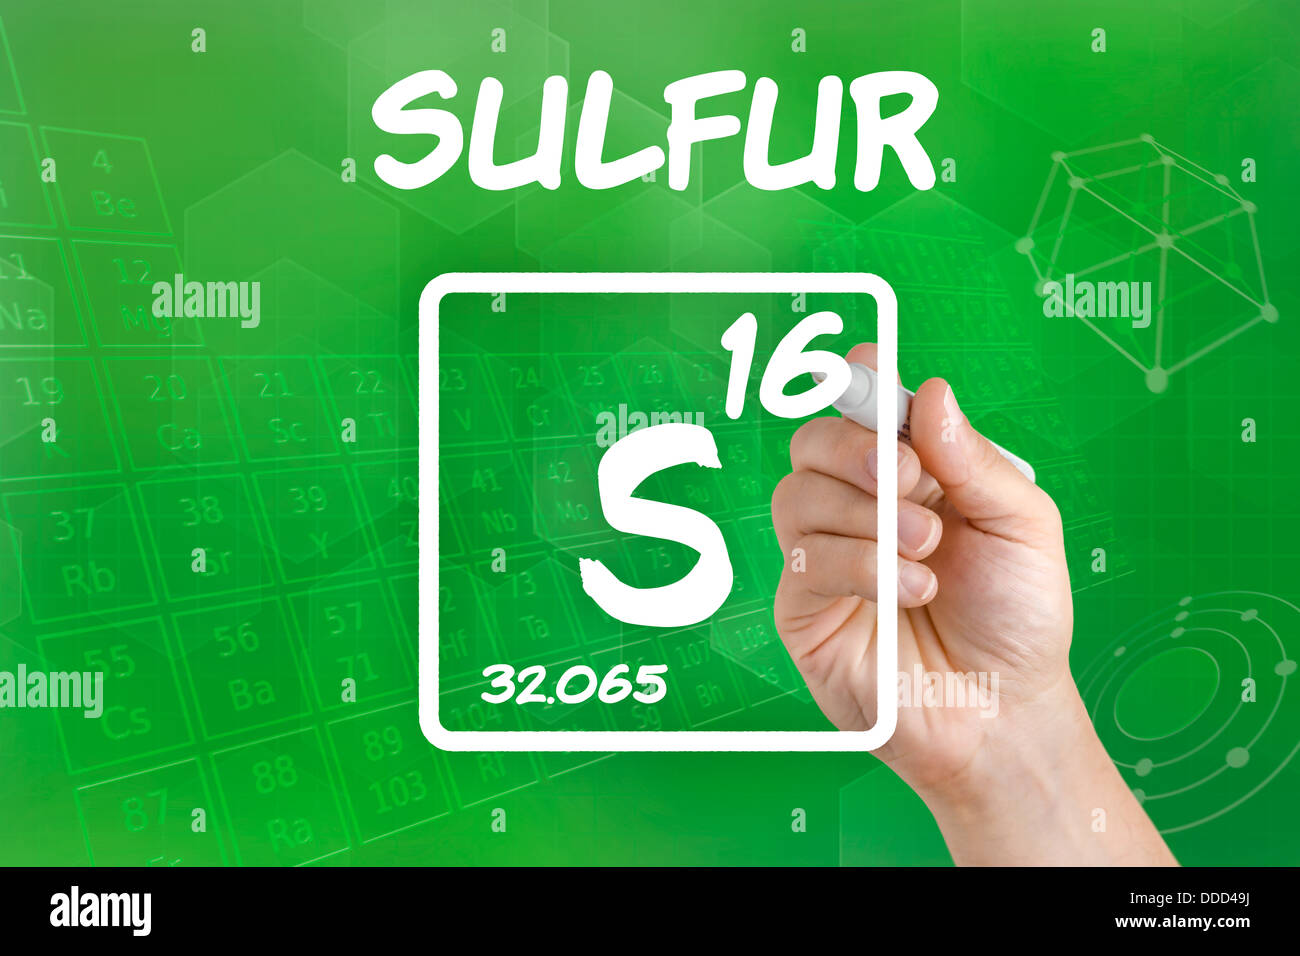 Symbol For The Chemical Element Sulfur Stock Photo 59910414 Alamy